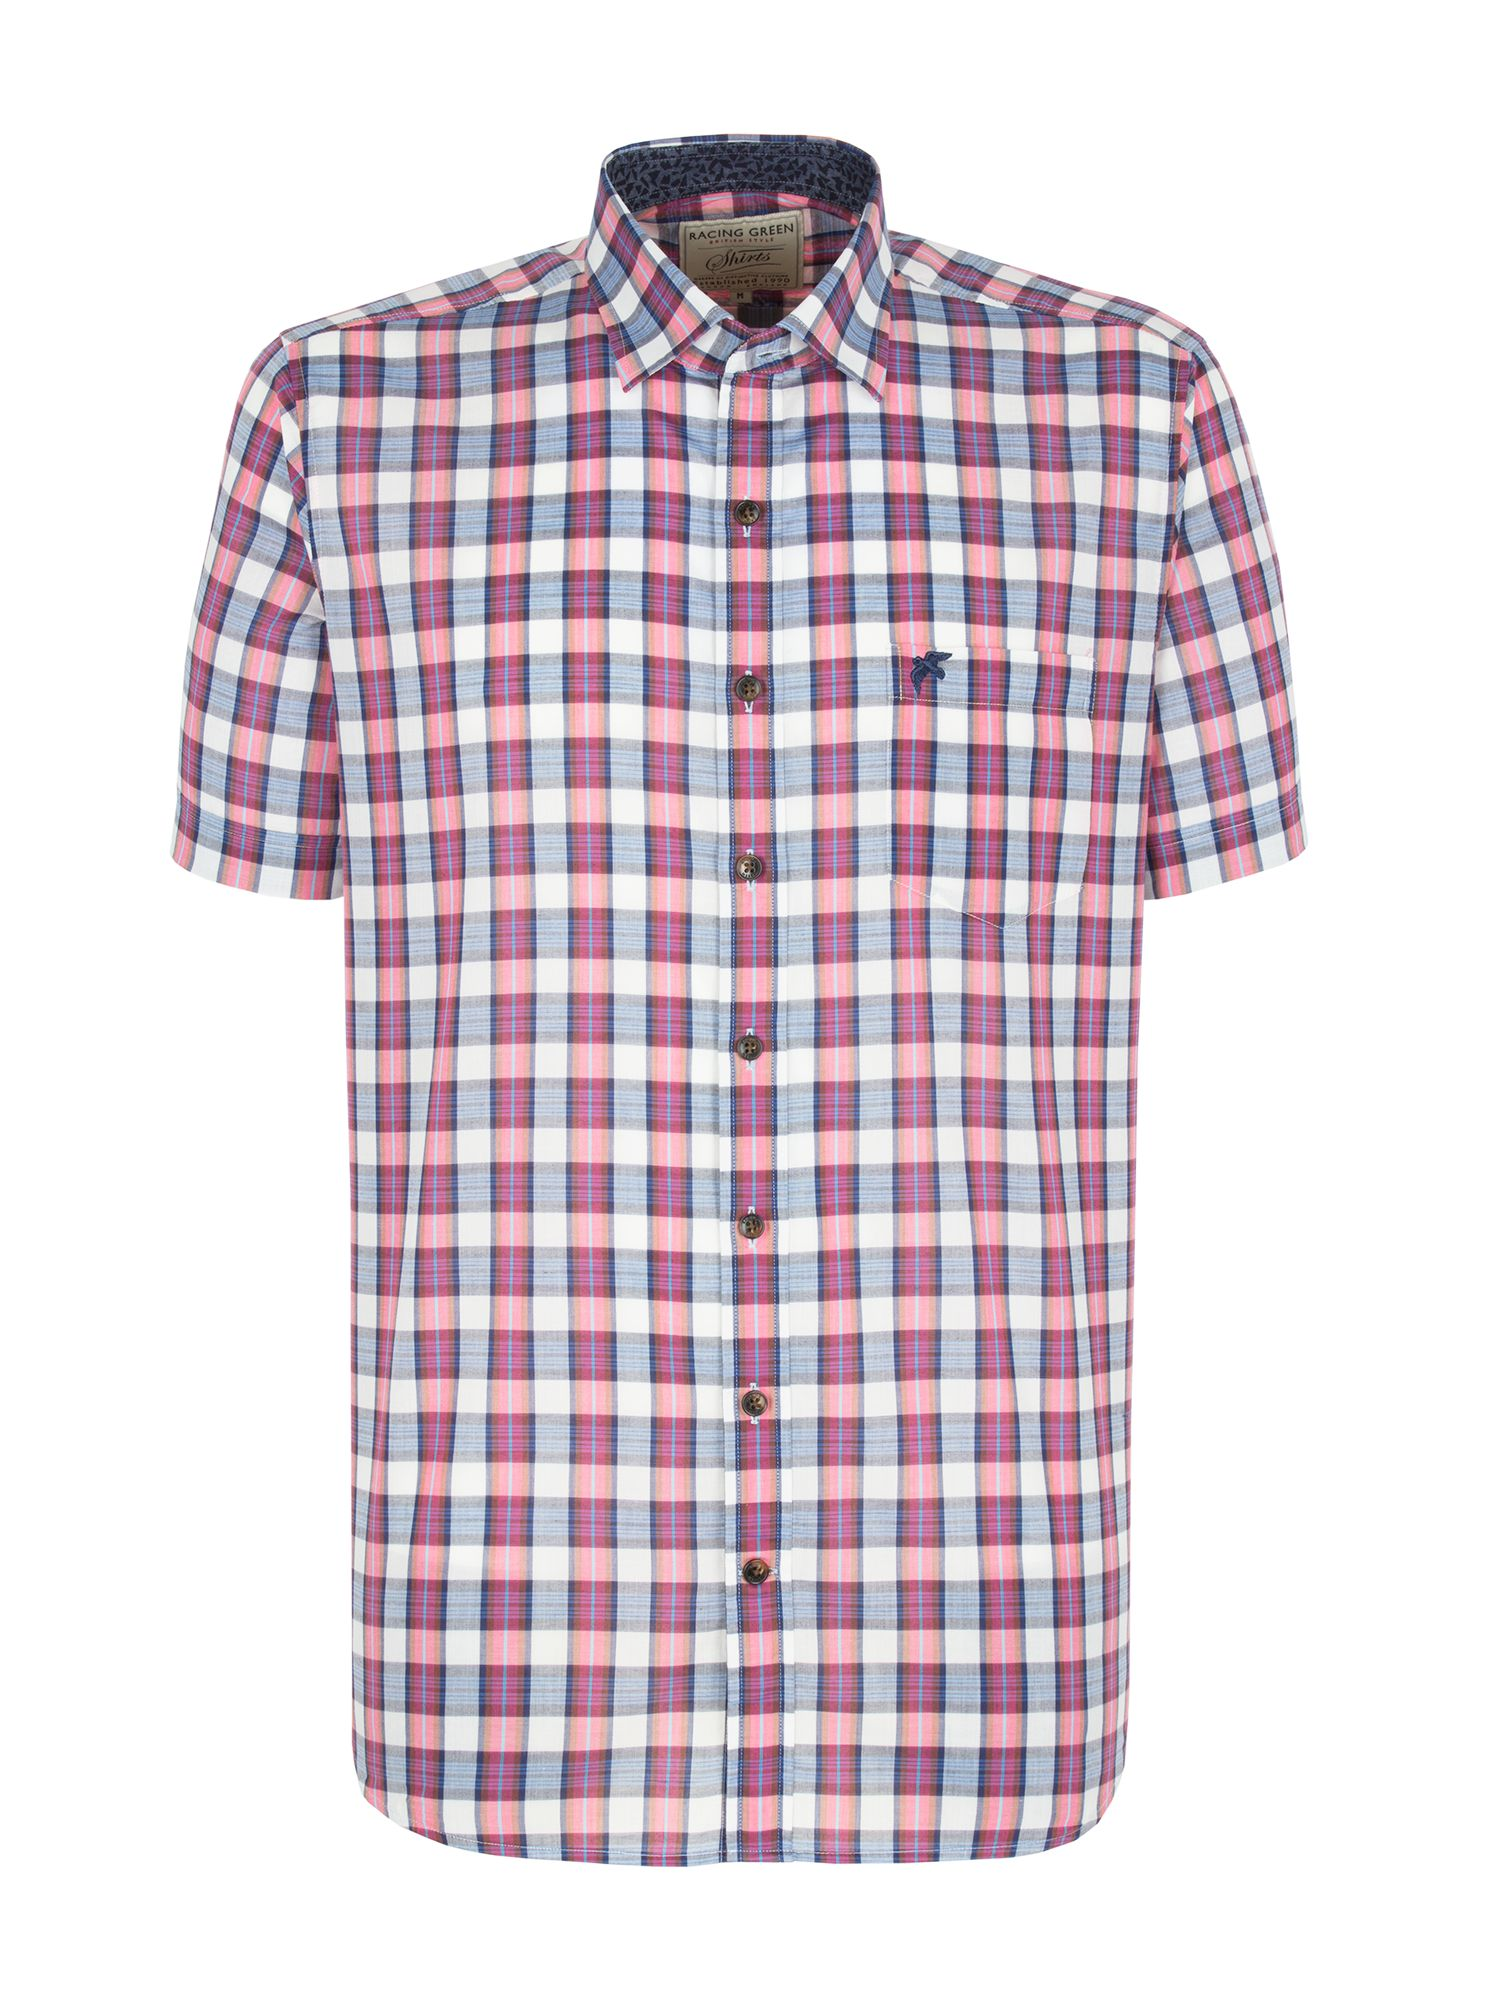 Beacon highlight check shirt